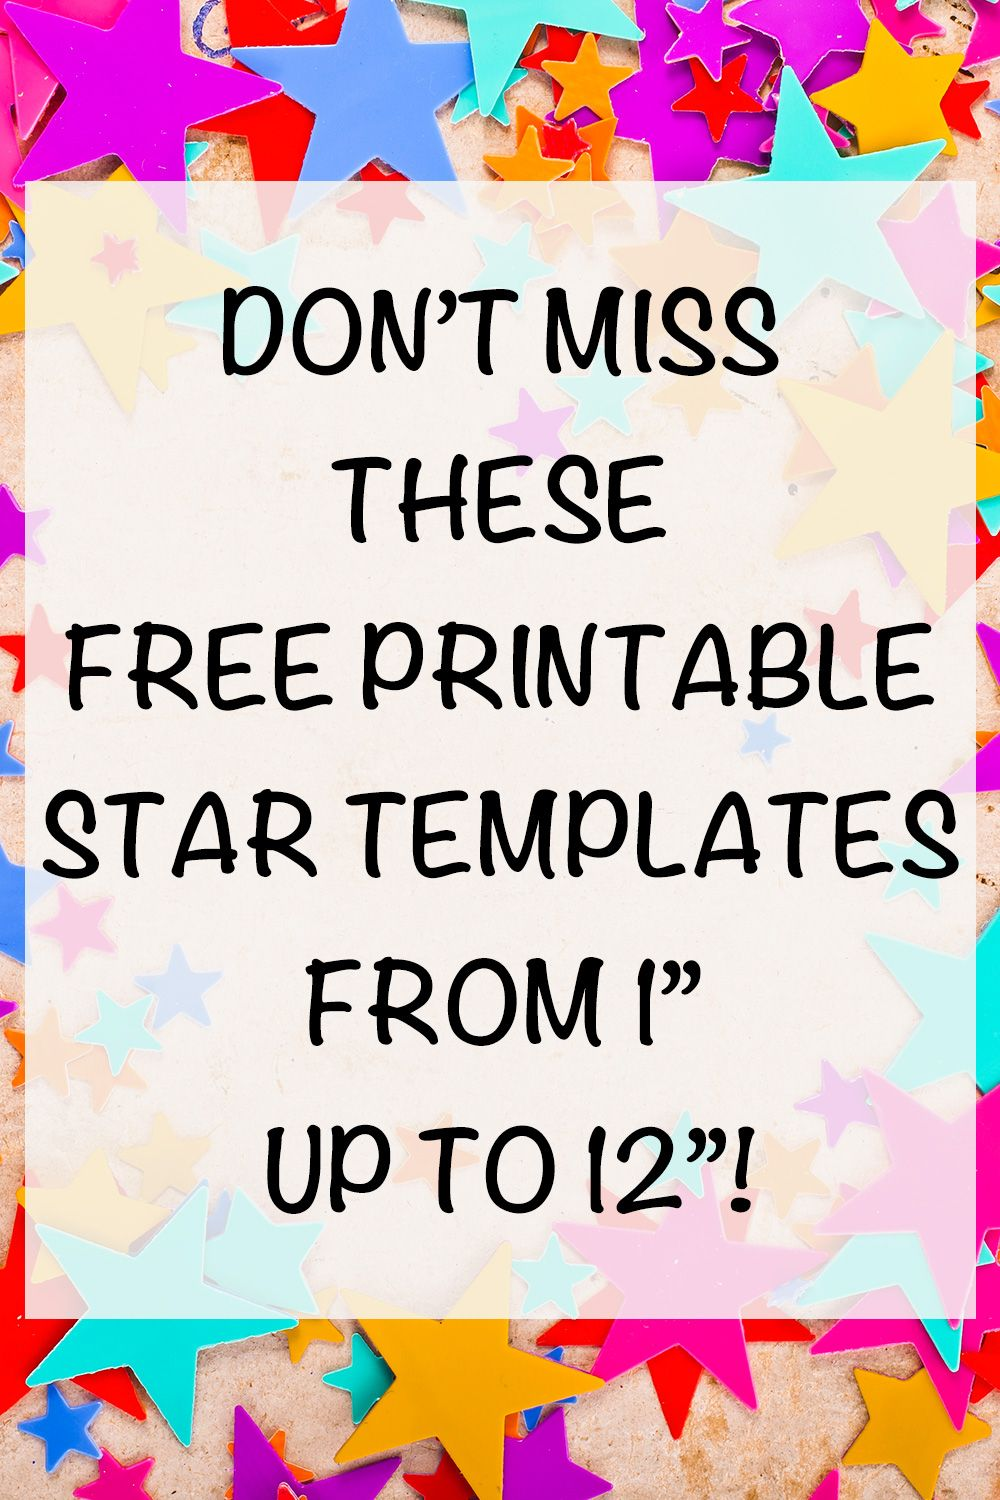 25 Free Printable Star Templates Extra Large Star Pattern Star Template Printable Free Stencils Printables Templates Star Template